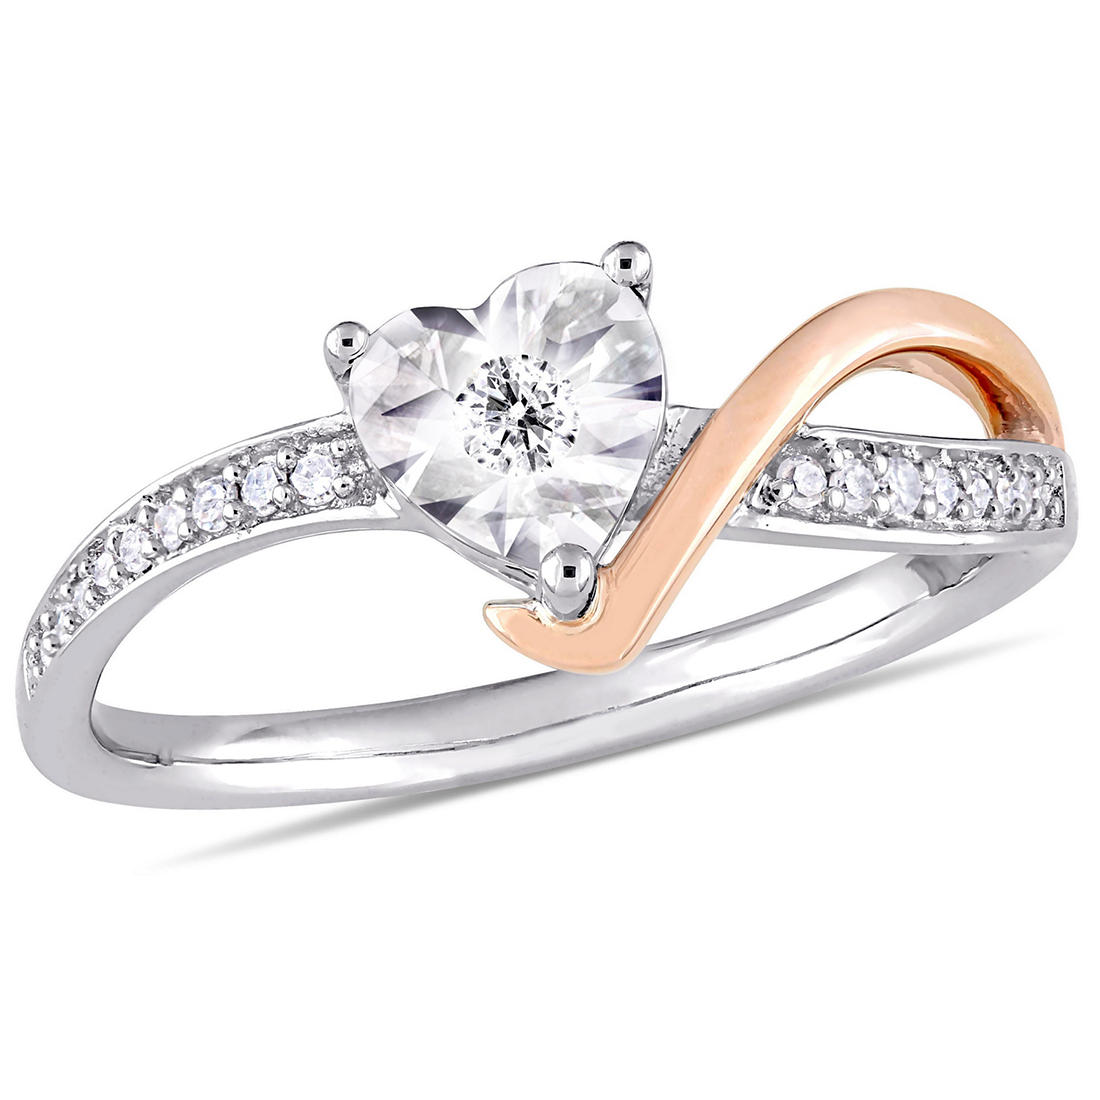 10 Ct T W Diamond Heart Shaped Engagement Ring In 10k White And Rose Gold Size 7